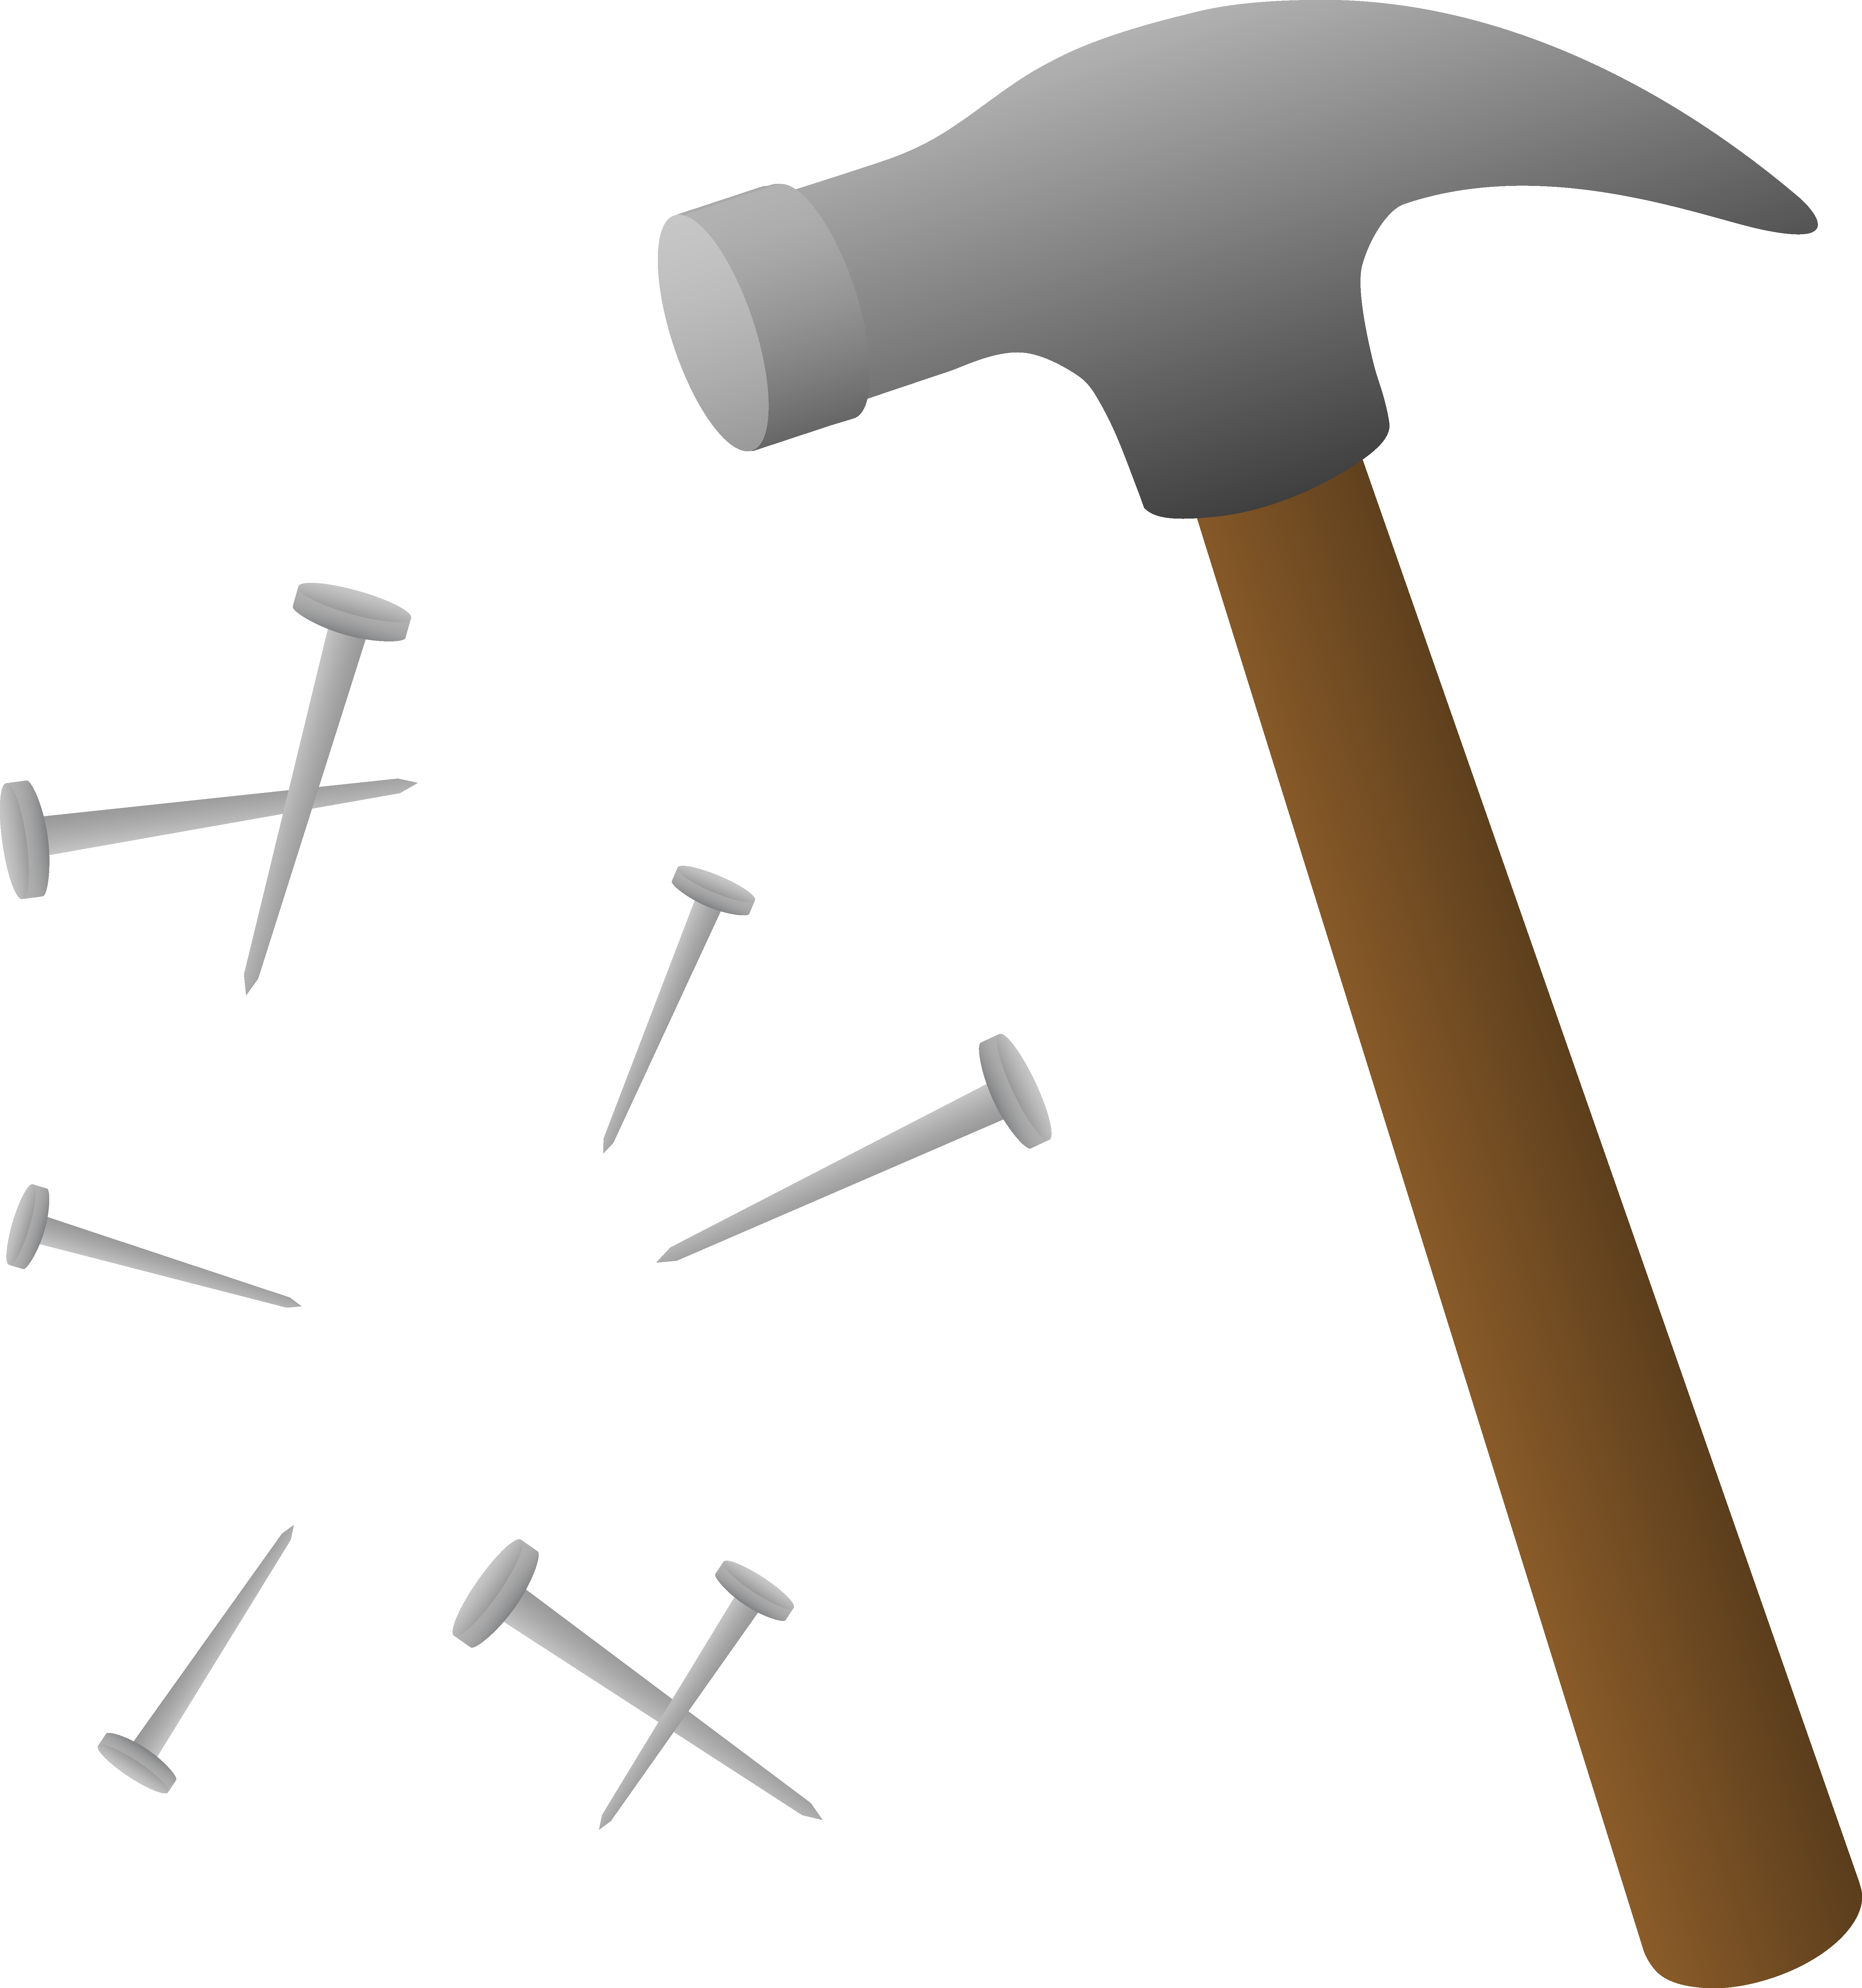 Nail clipart small hammer. Clip art and tacks